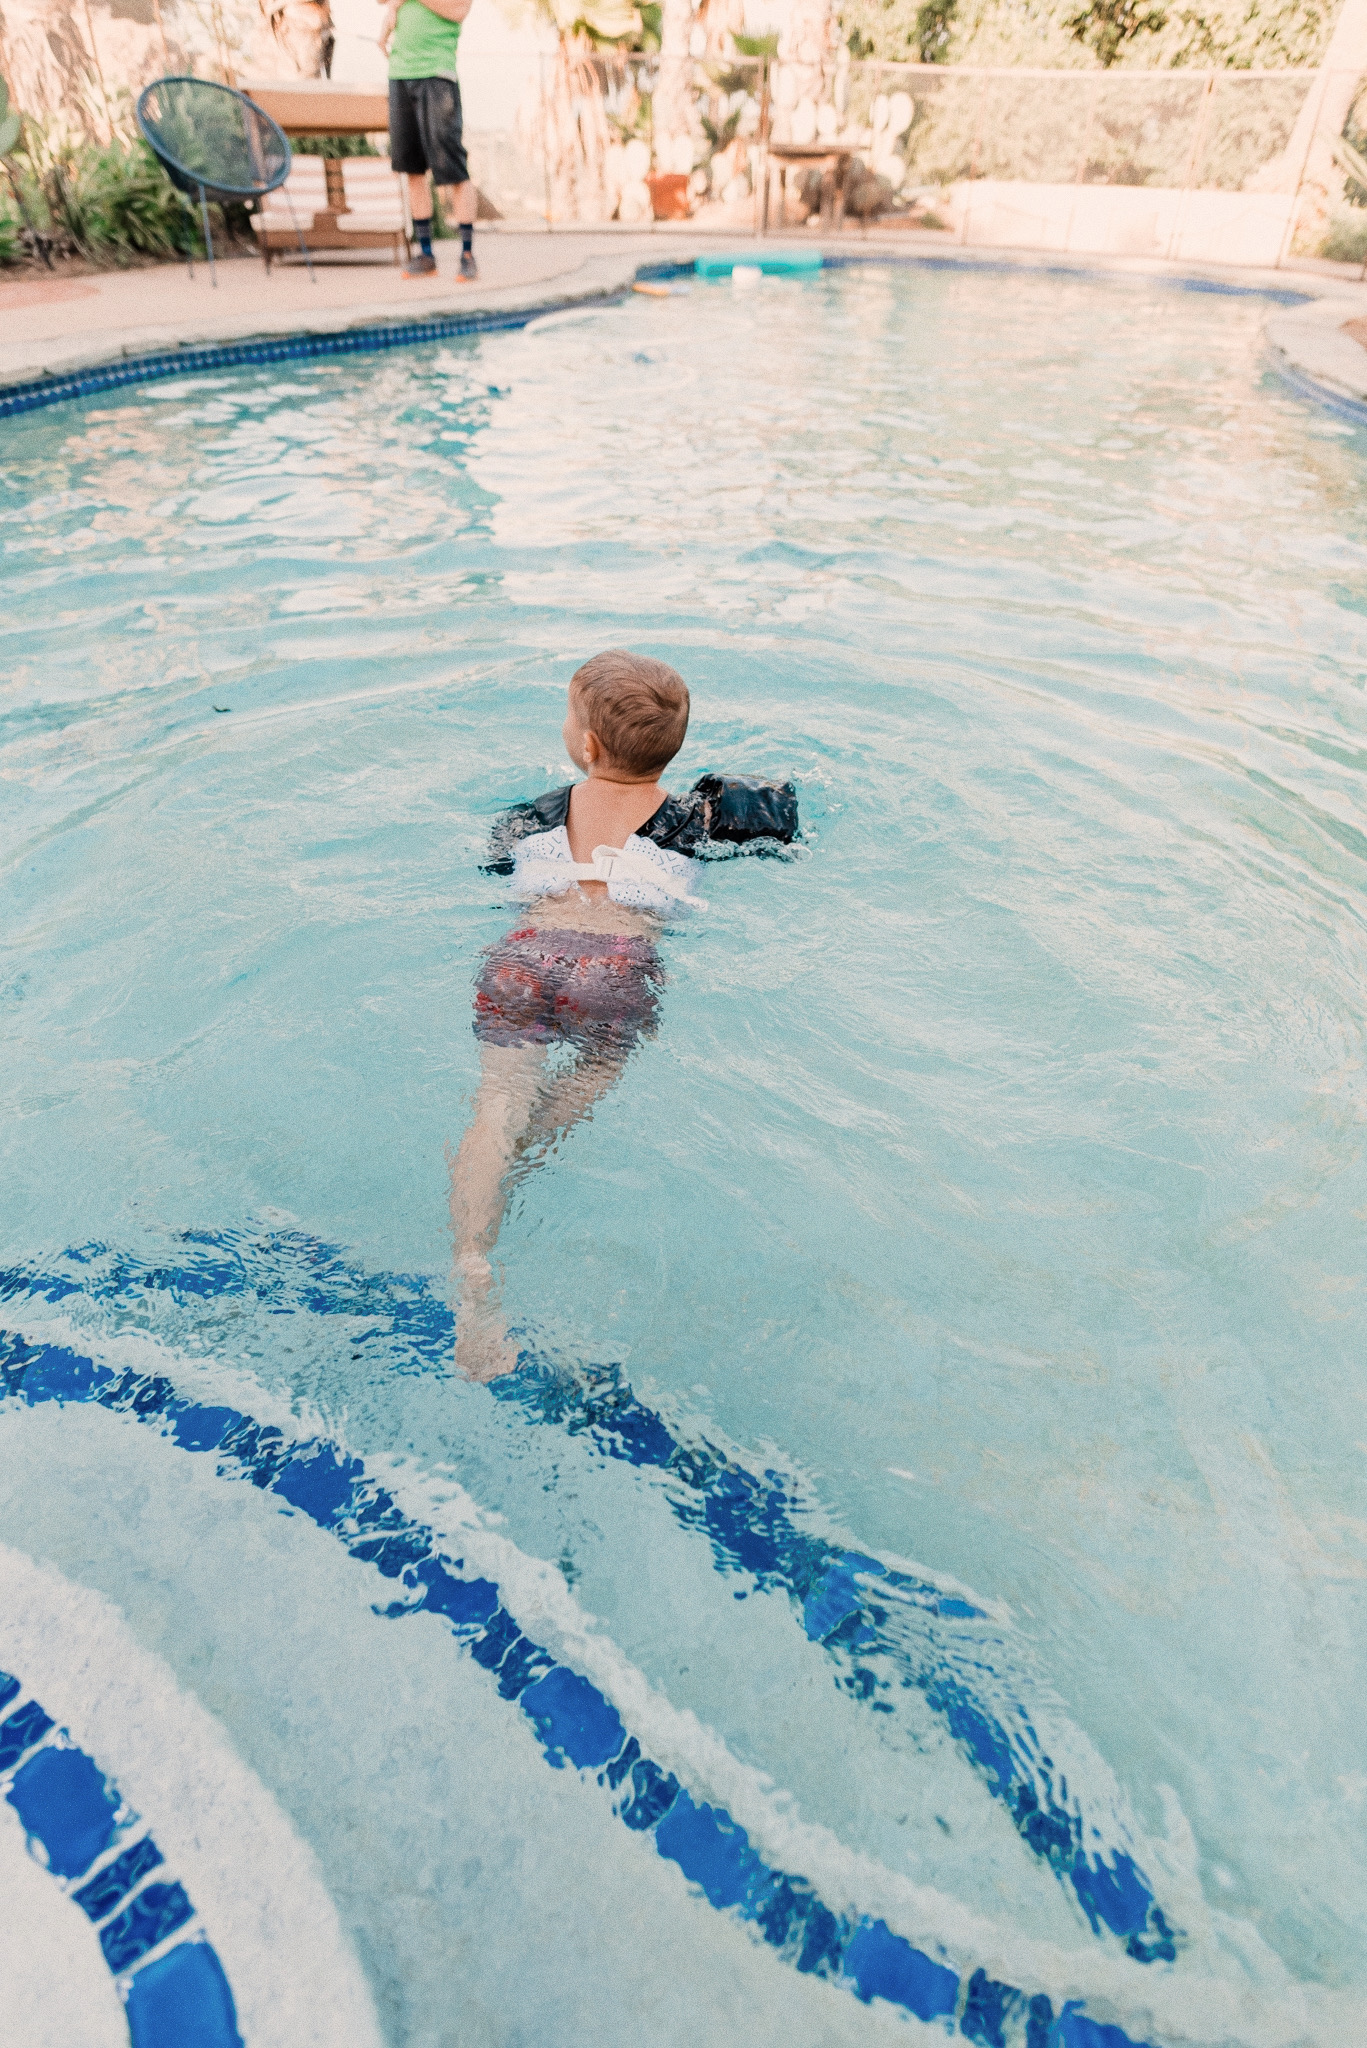 Kids Swimsuits by popular San Diego fashion blog, Navy Grace: image of a little boy wearing a tiger print swimsuit and puddle jumper as he swims in his swimming pool.